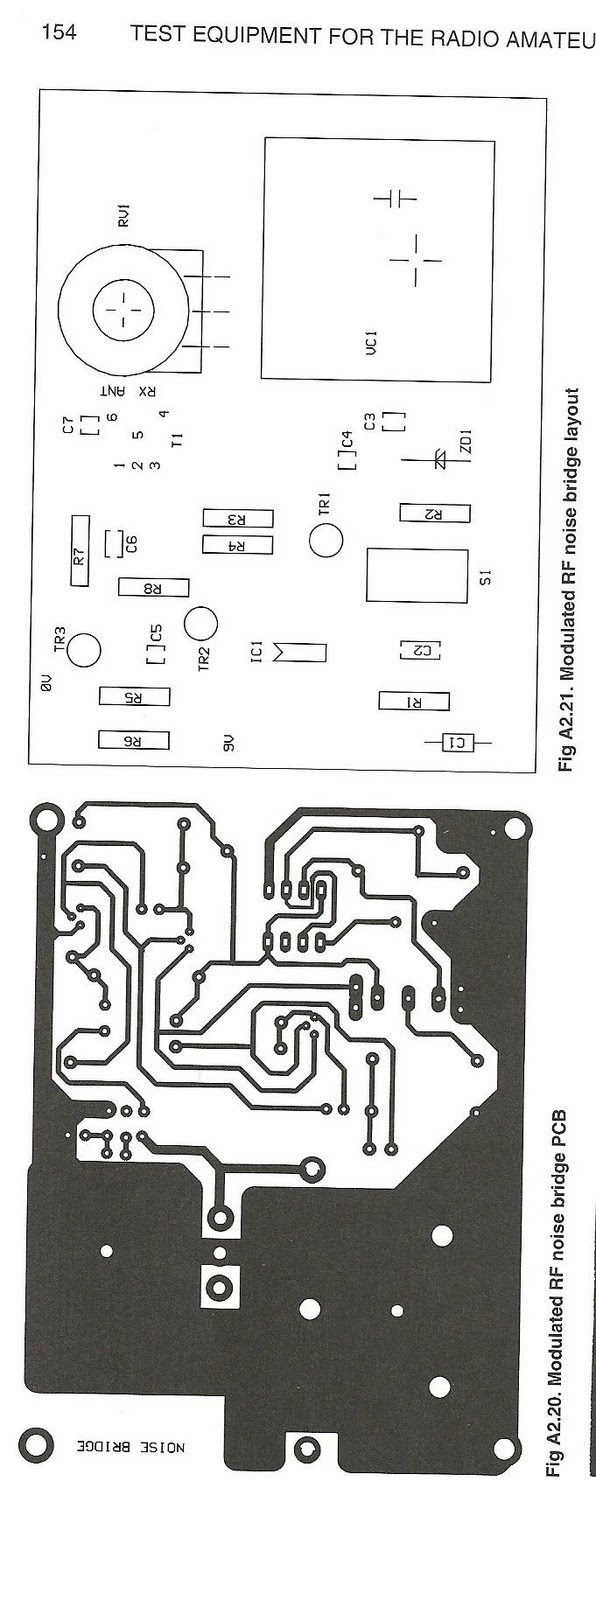 for those who like to homebrew and need detailed build instructions as i do i have attached a noise bridge from test equipment by clive smith g4fzh using  [ 596 x 1600 Pixel ]